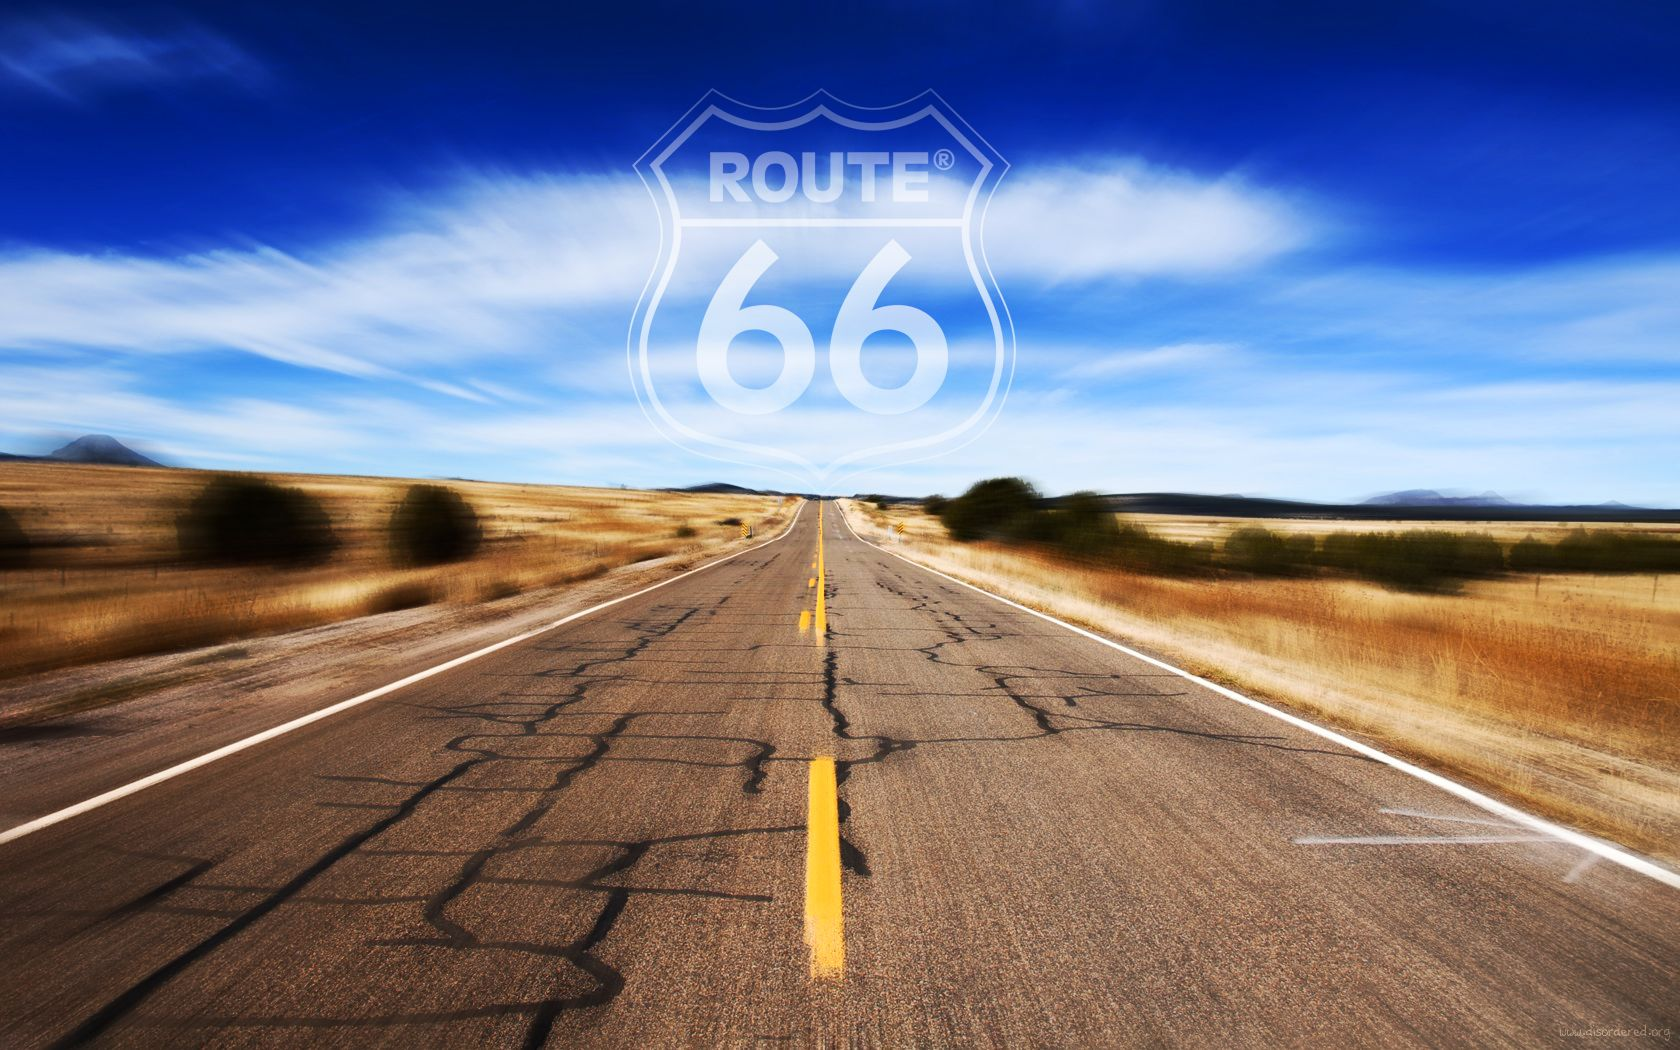 Route 66 Wallpaper Mobile Phone Fitrini S Wallpaper